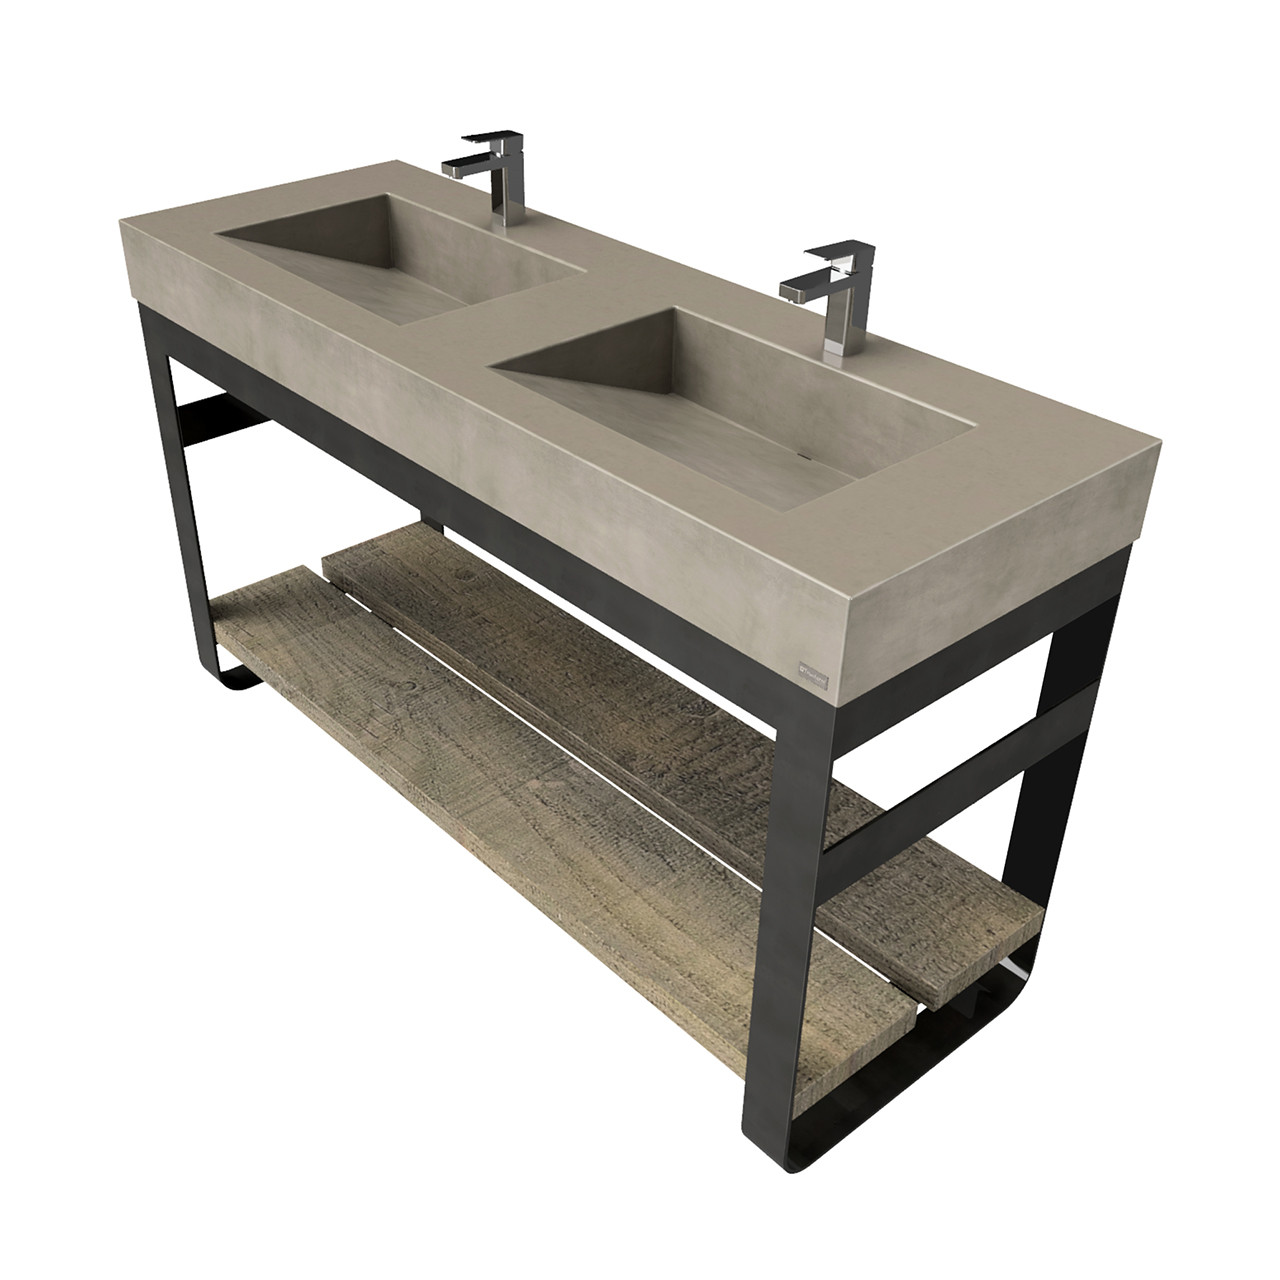 60 outland vanity with double concrete ramp sinks